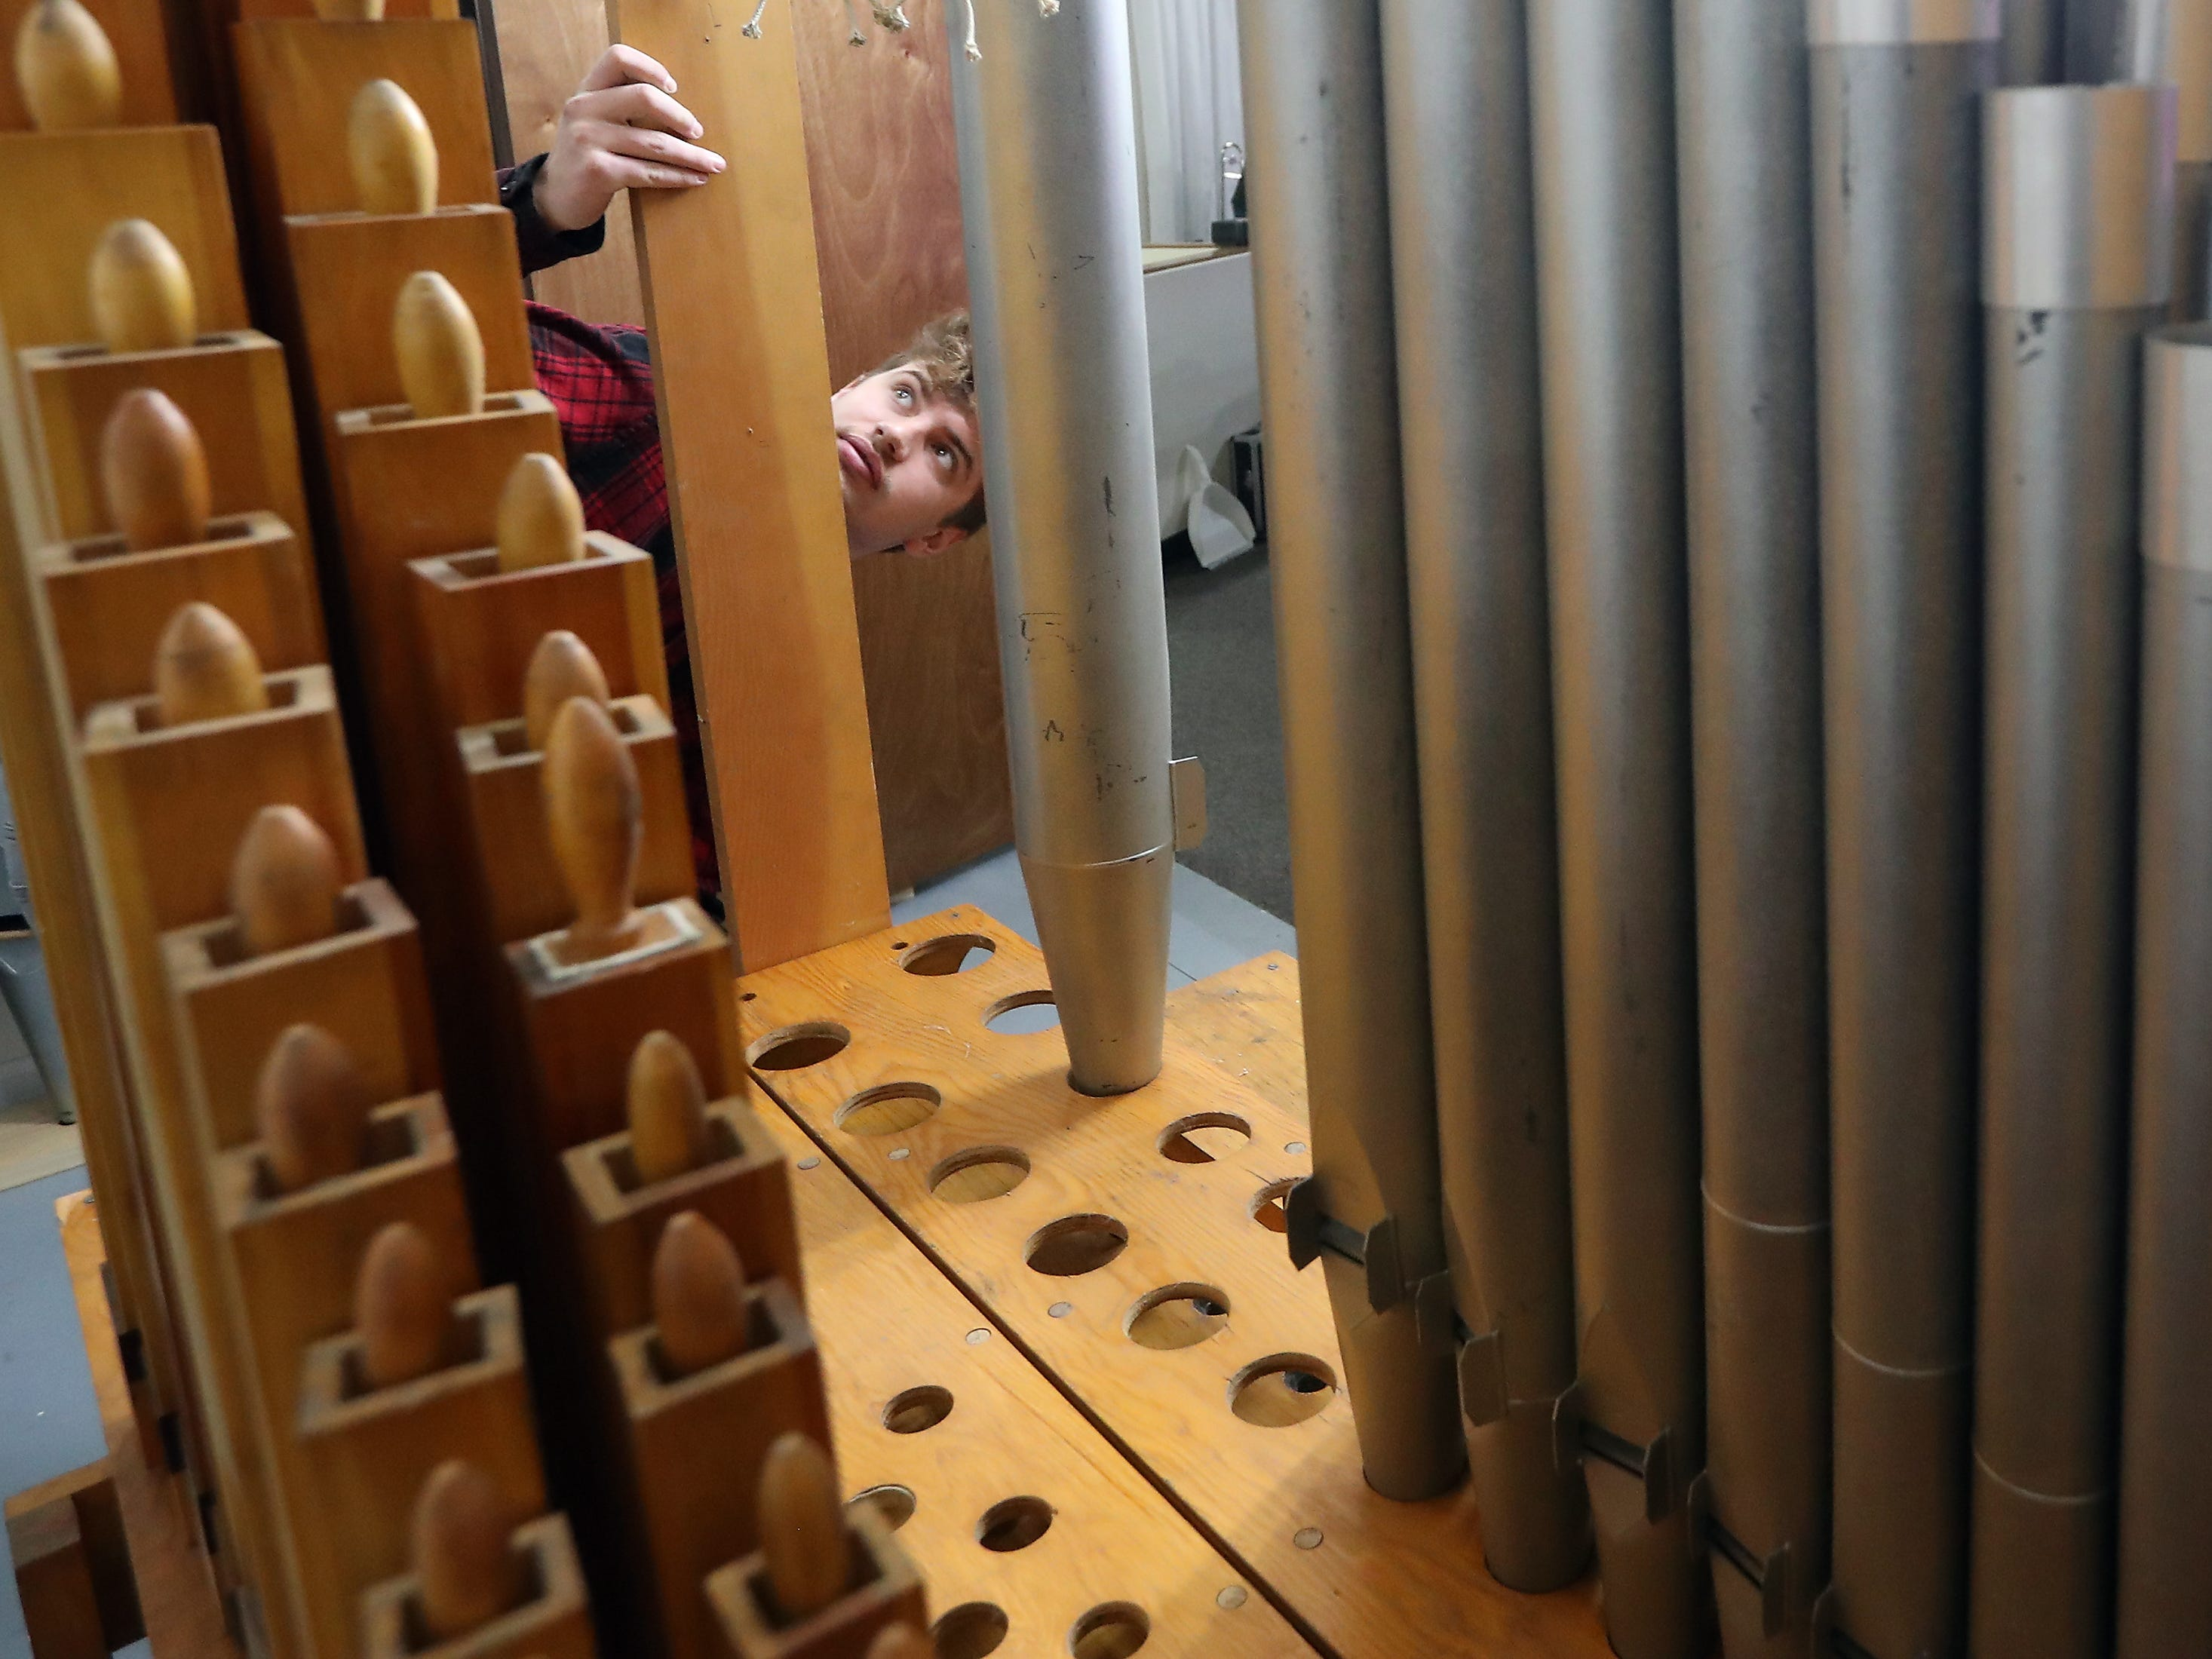 Bond Organ Builders of Portland apprentice Richard Uskovits attaches a brace piece that will hold the bigger pipes in place at Peace Lutheran Church in Bremerton on Tuesday, January 22, 2019.